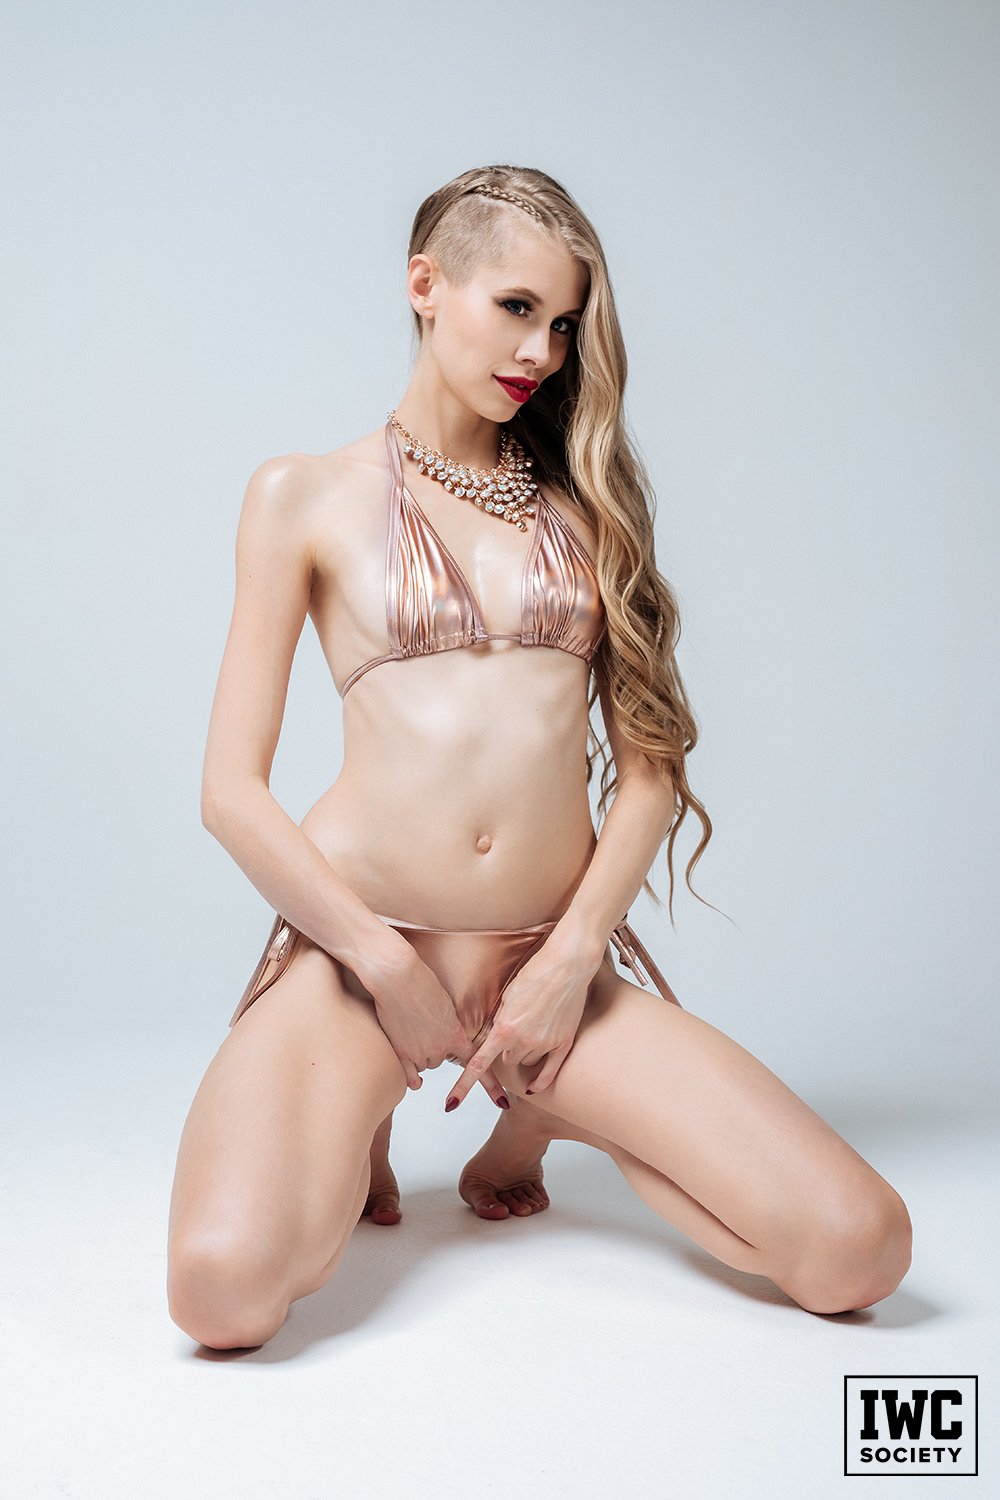 blonde domme goddess Kyaa in a gold bikini expressing tease and denial